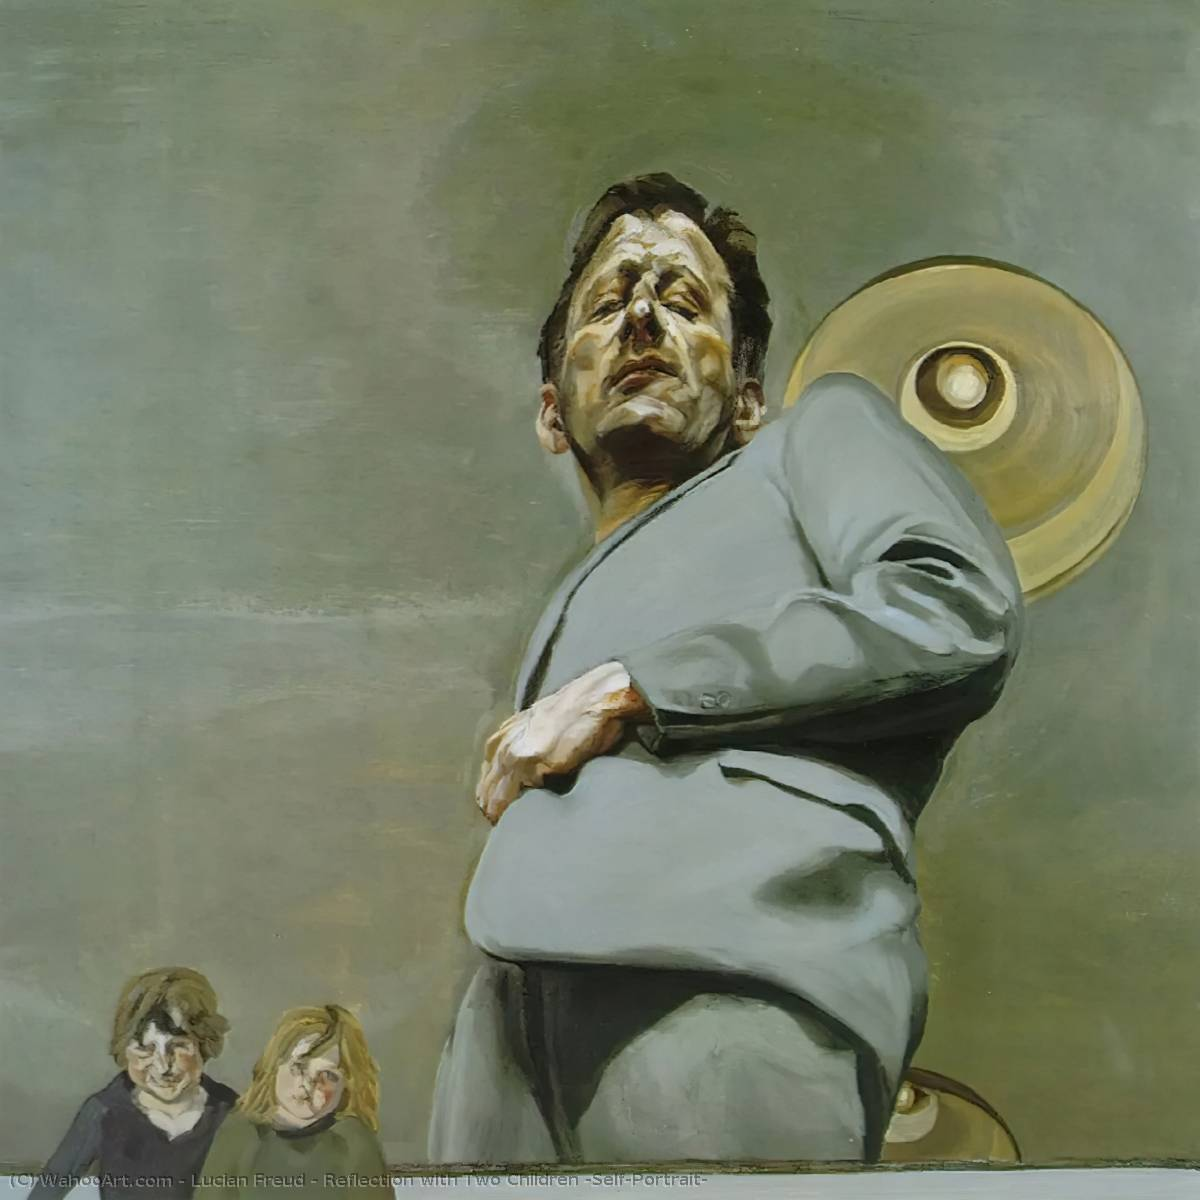 famous painting reflexión con dos niños ( Self-Portrait ) of Lucian Freud